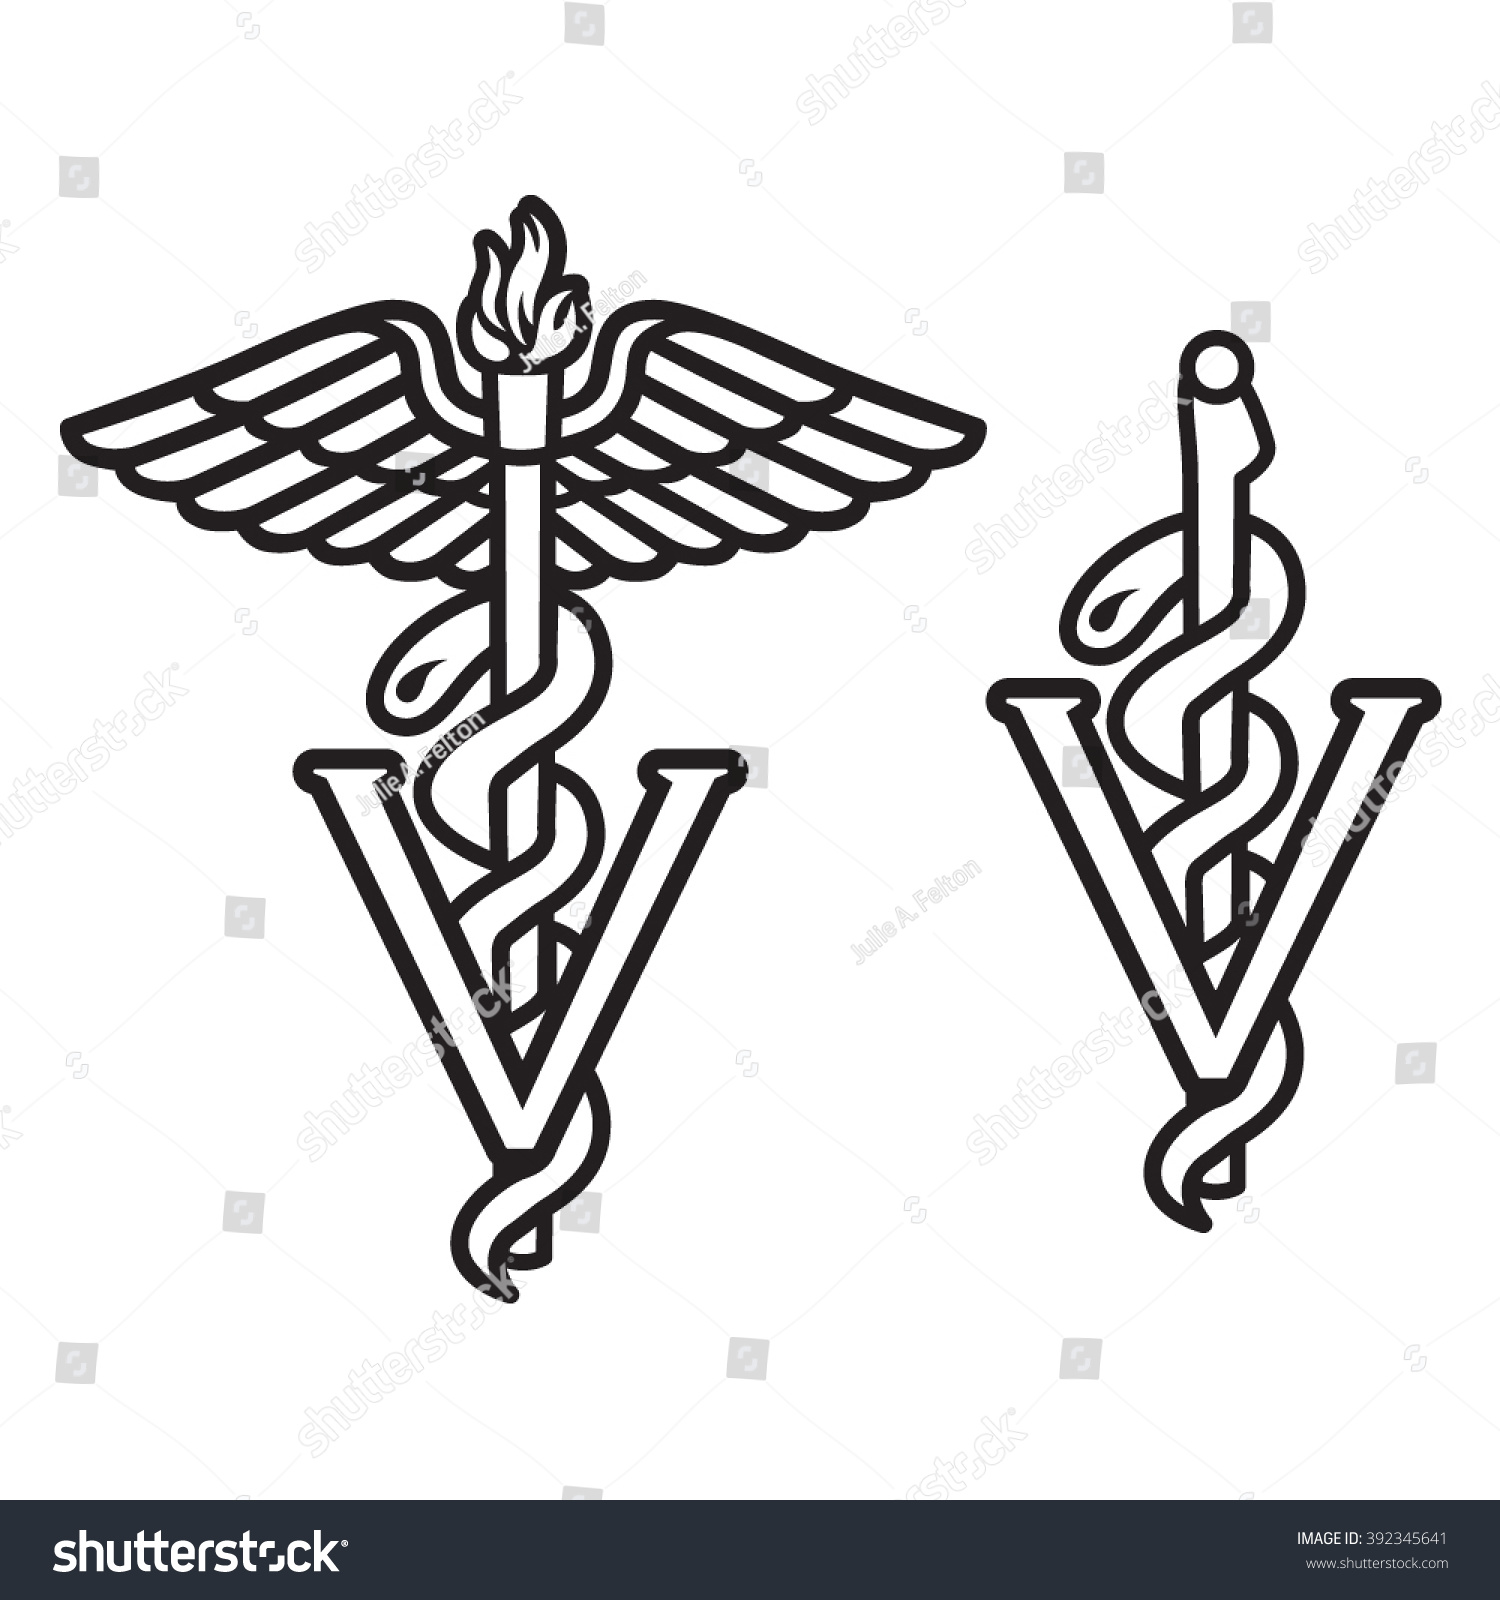 Veterinarian Caduceus Symbol Stock Vector Royalty Free 392345641